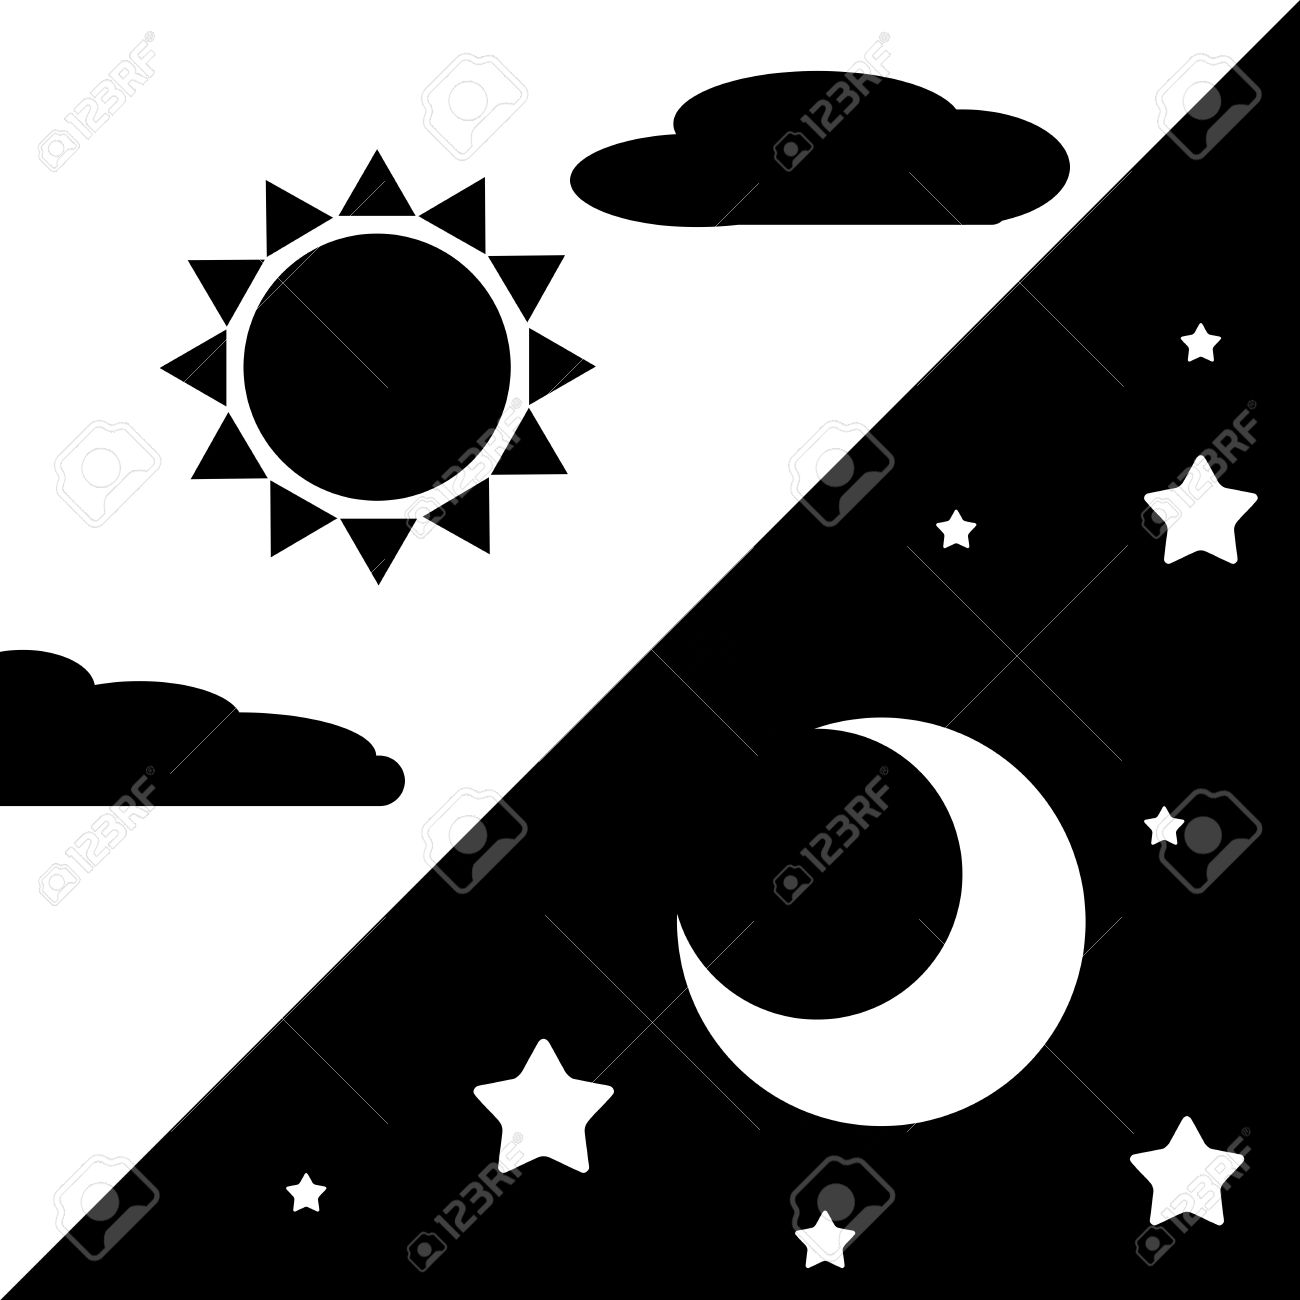 Day And Night Sign Symbol Stock Photo Picture And Royalty Free